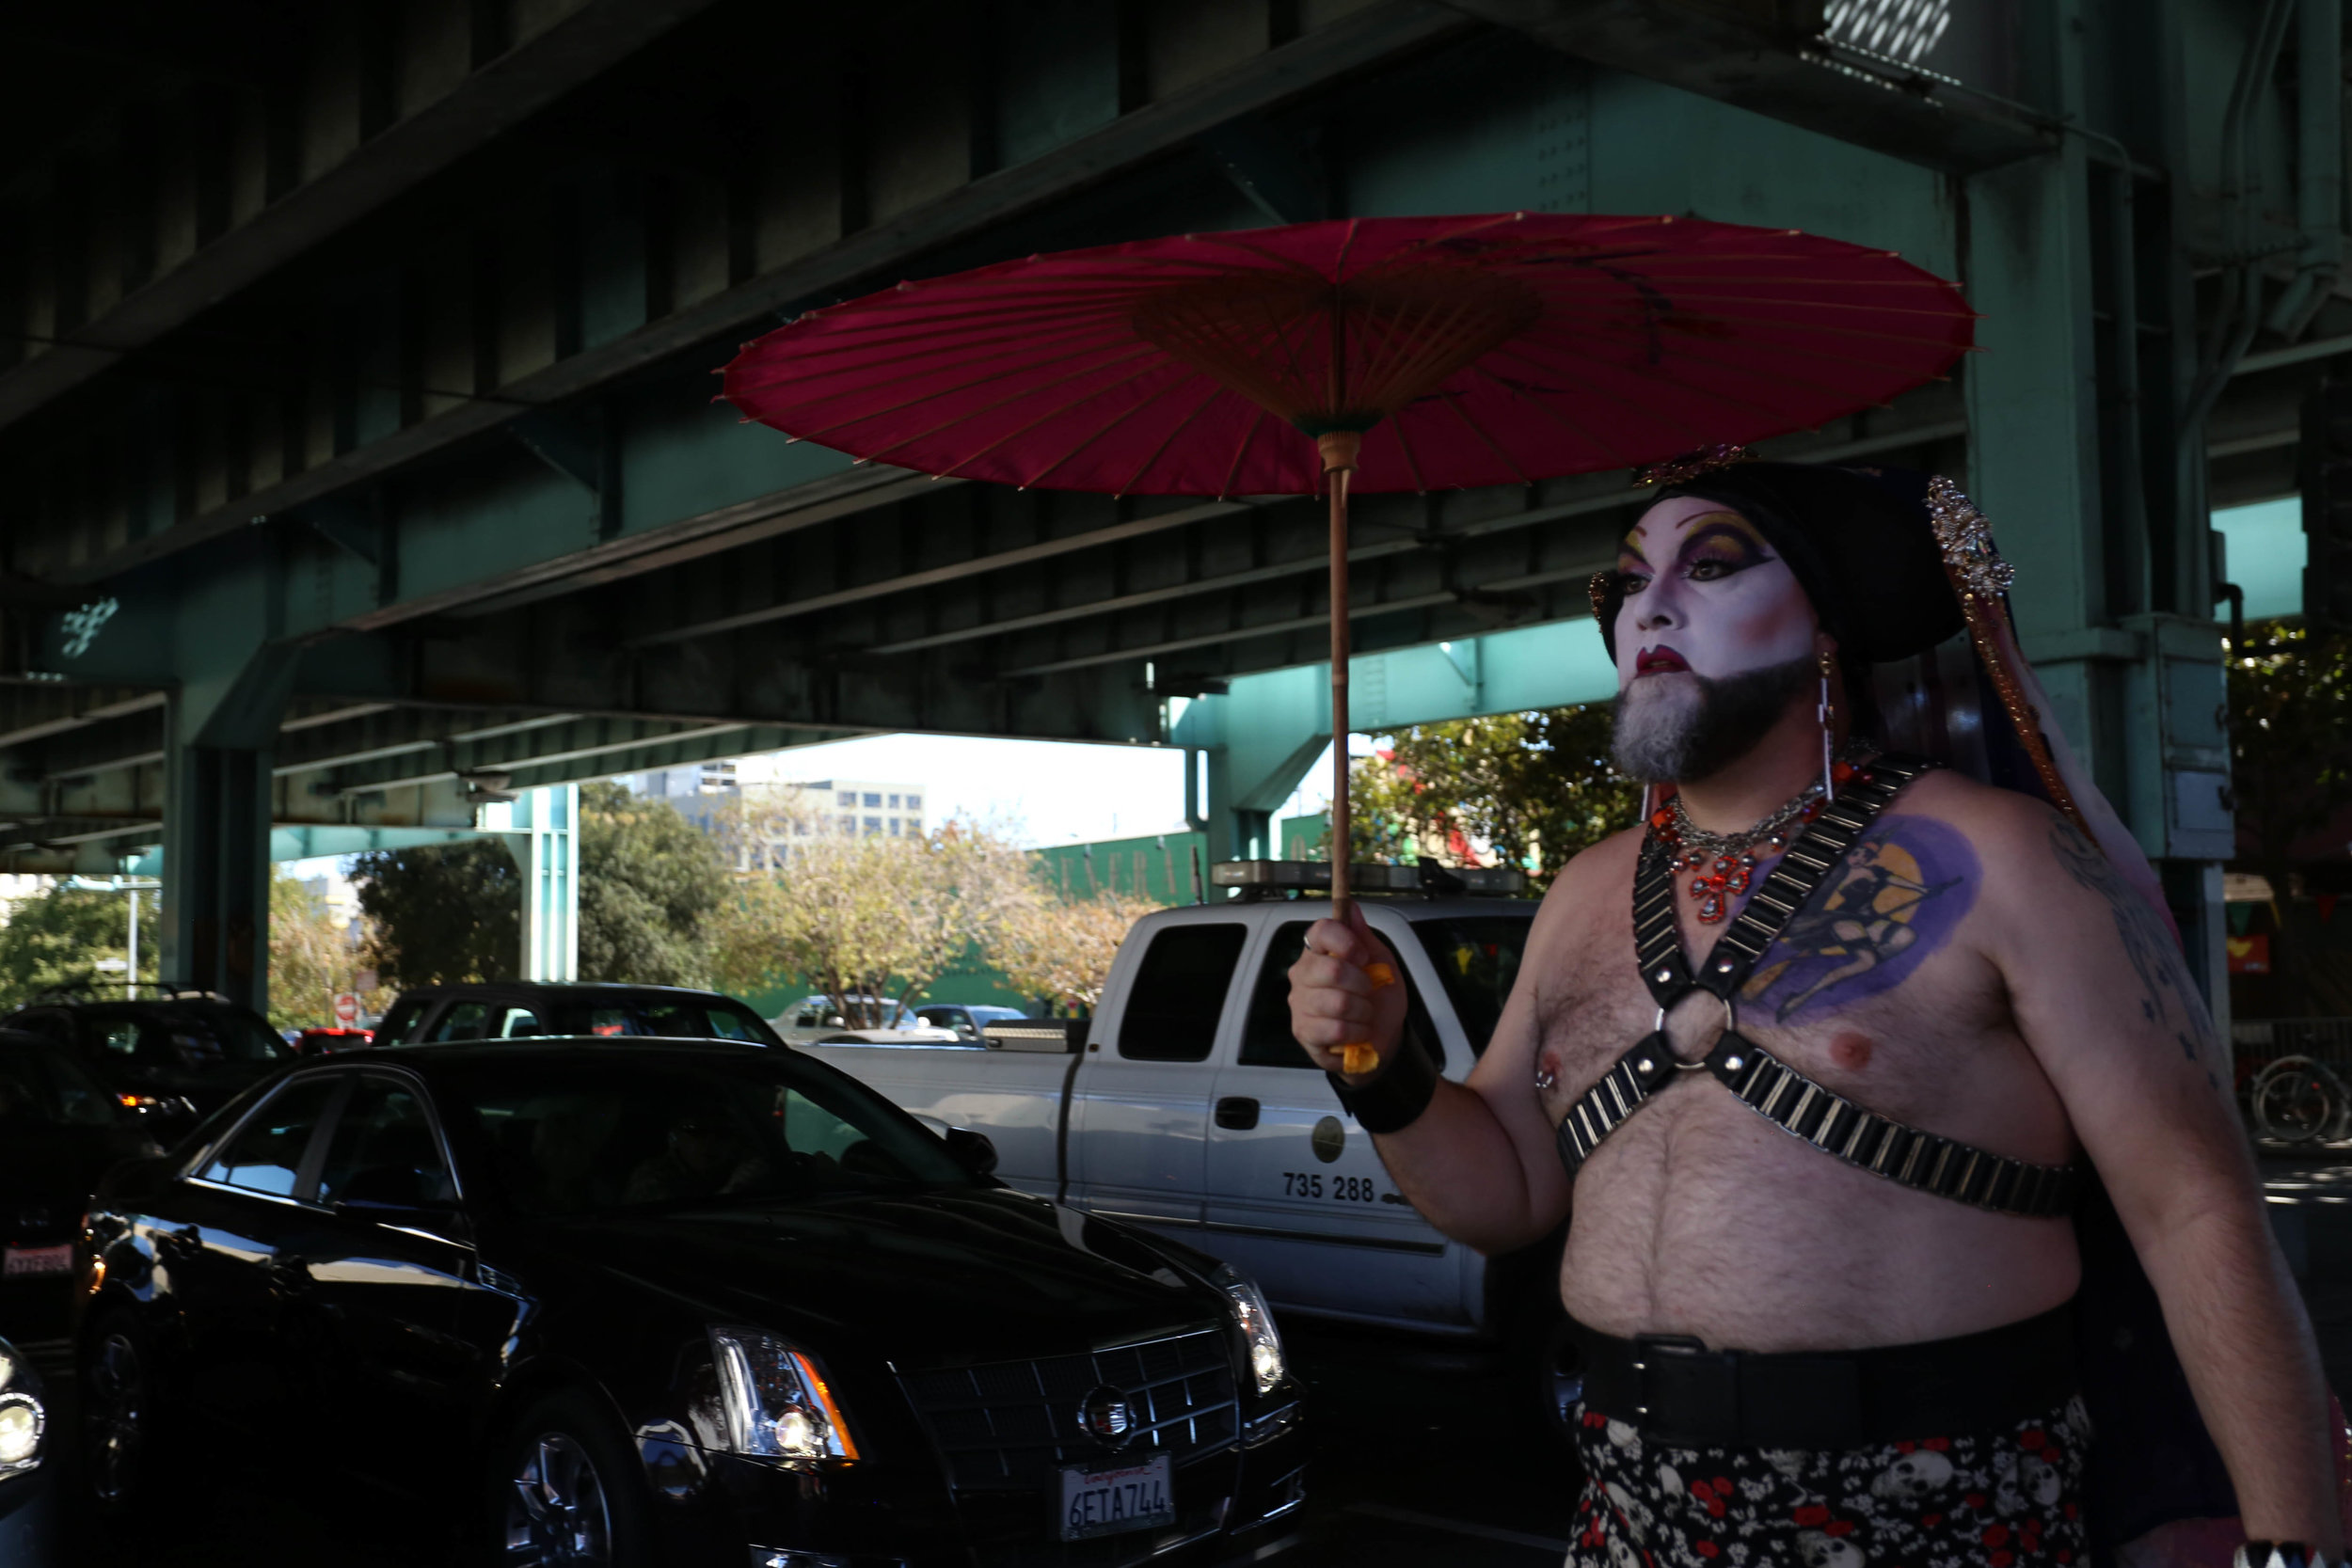 A Sister of Perpetual Indulgence makes her way to the Folsom Street Fair where hundreds gathered for the festivities, San Francisco, California, Sunday, Sept. 25, 2016. (Jessica Webb)